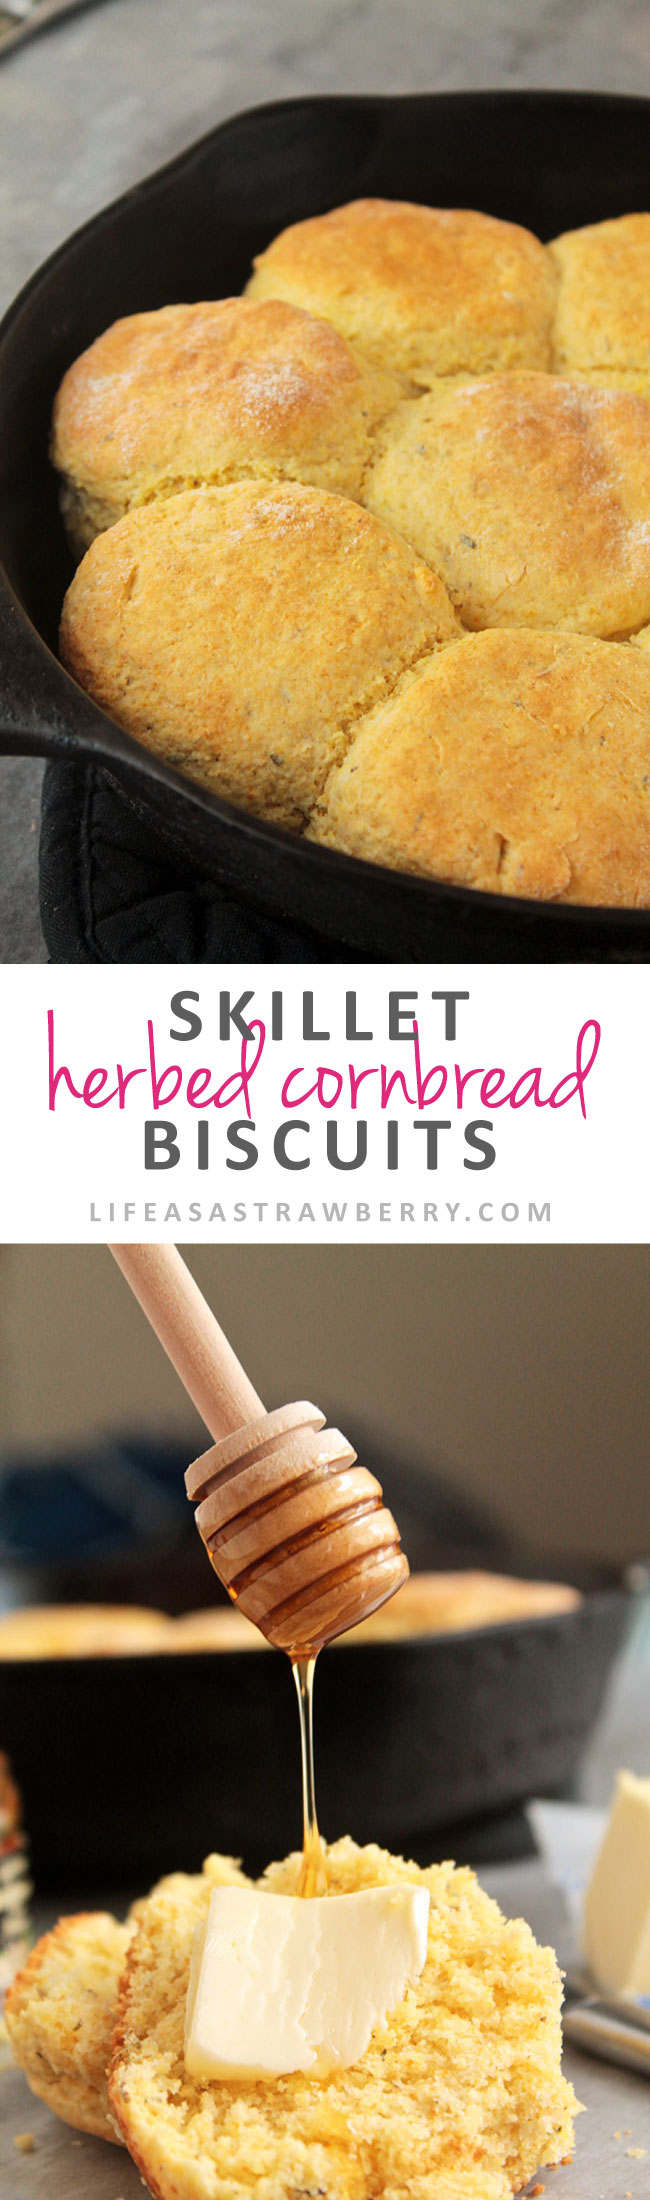 Skillet Herbed Cornbread Biscuits | Mix up your side dish routine at breakfast, lunch, or dinner with this unique cornbread recipe! Bake cornbread biscuits in a cast iron skillet and serve with chili or any other meal! Vegetarian.